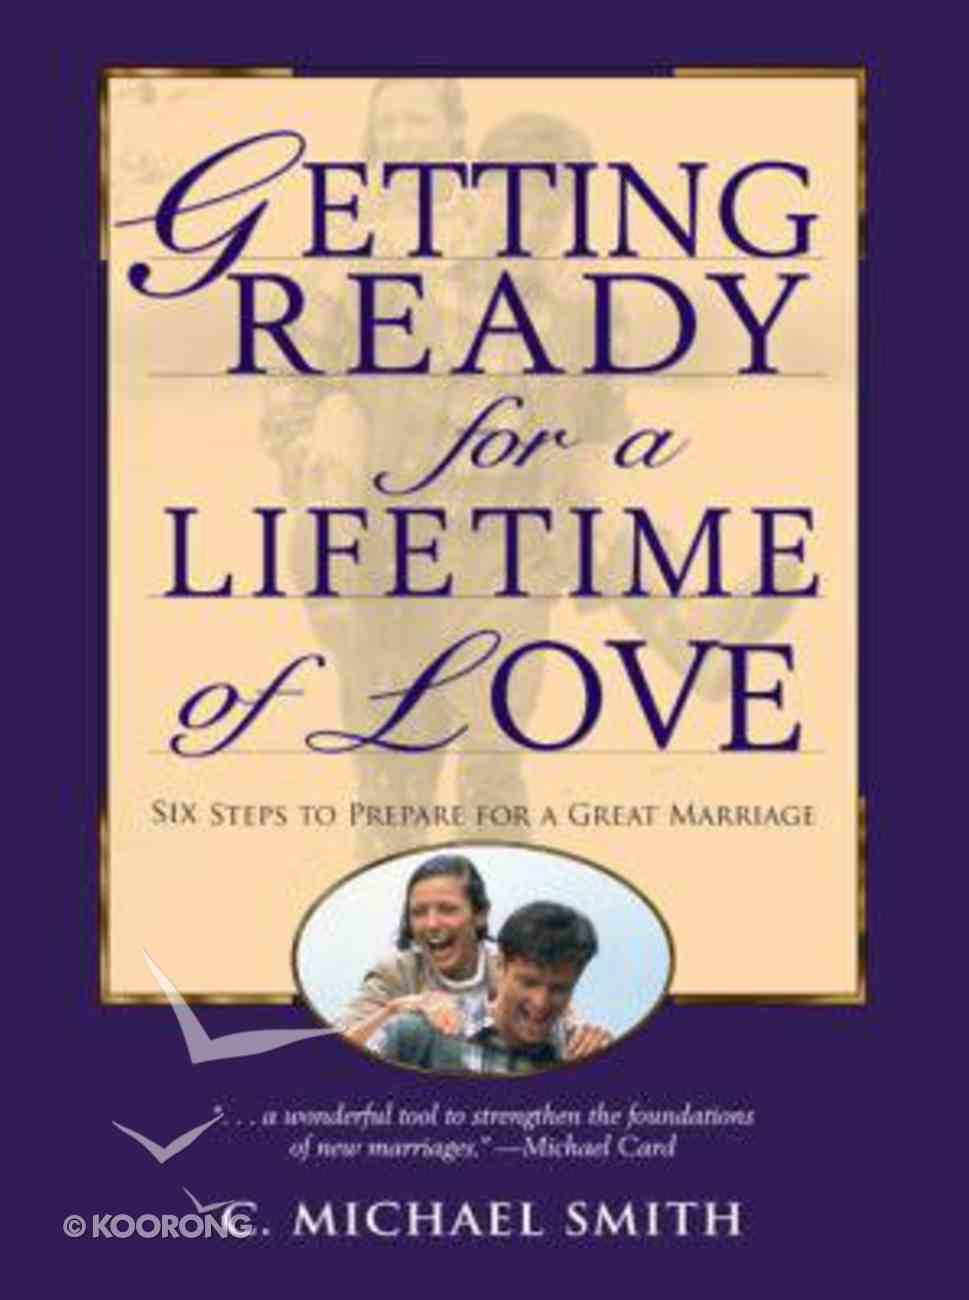 Getting Ready For a Lifetime of Love Paperback